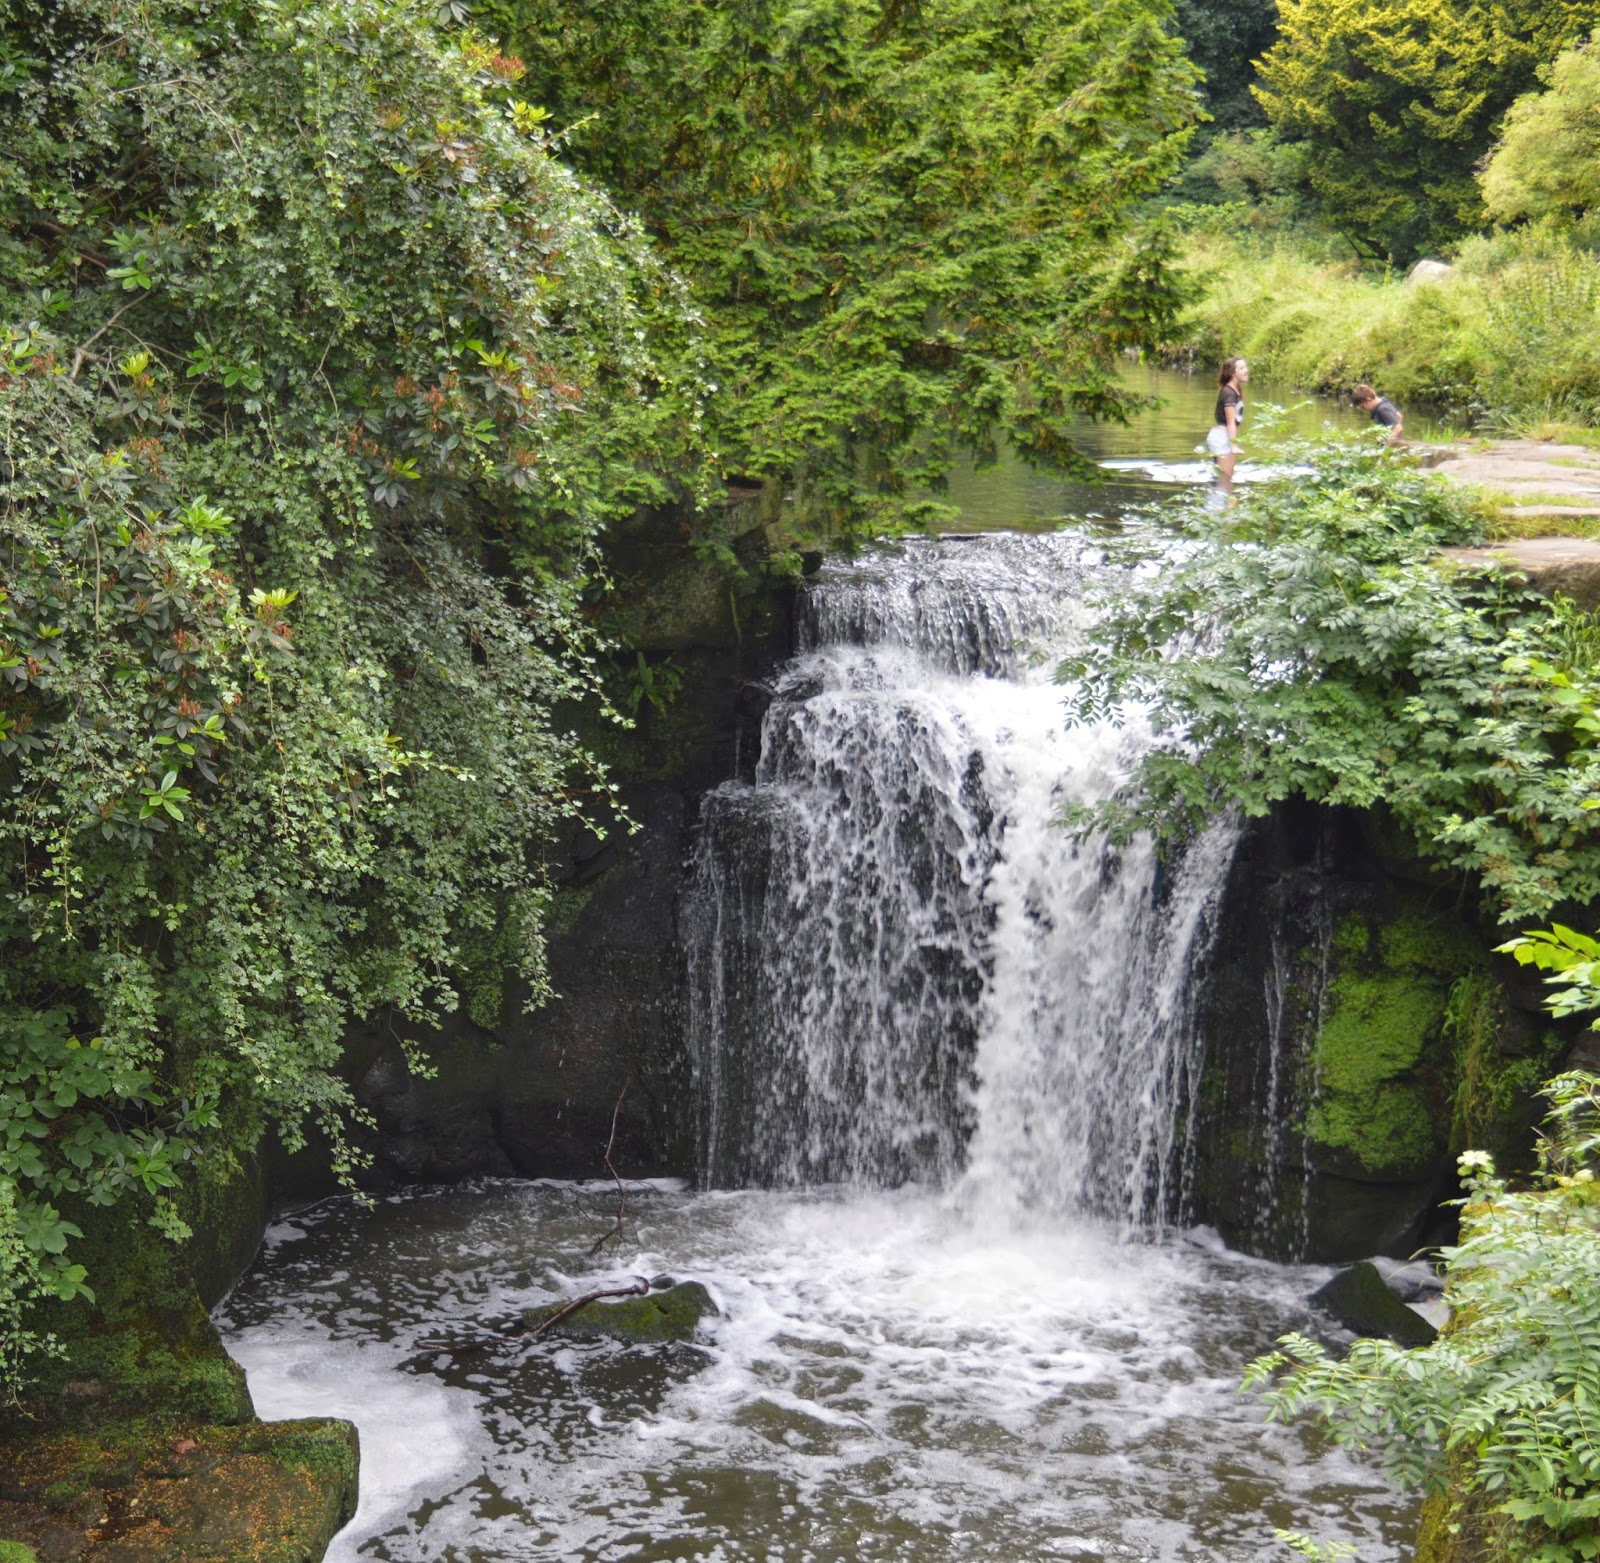 11 Fun Date Ideas in Newcastle Upon Tyne - Jesmond Dene Waterfall